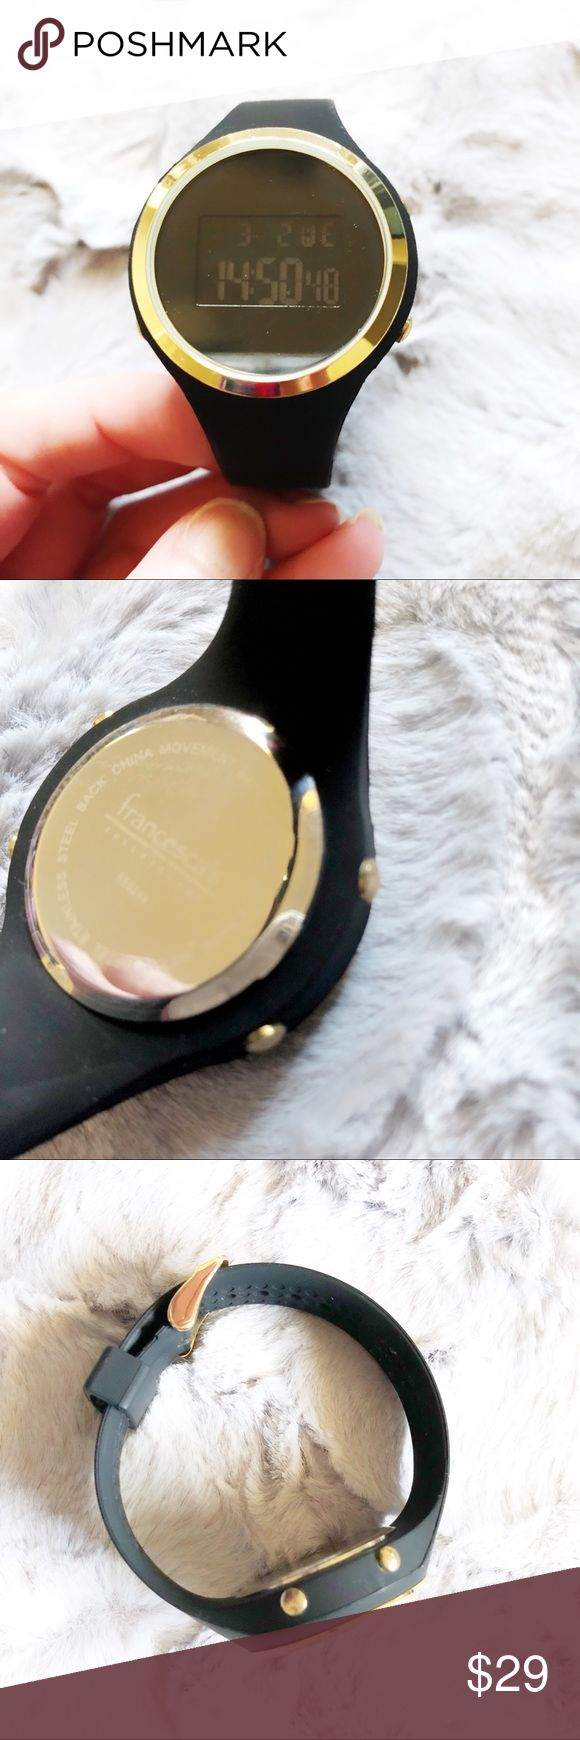 Francesca's Collection digital black gold watch Make an offer! In excellent condition. Currently showing military time and I haven't messed with it to try to change it. Lights up as shown, shows the date and has a stopwatch timer. No trades. Bundle and save - I'm a fast shipper! Francesca's Collections Accessories Watches